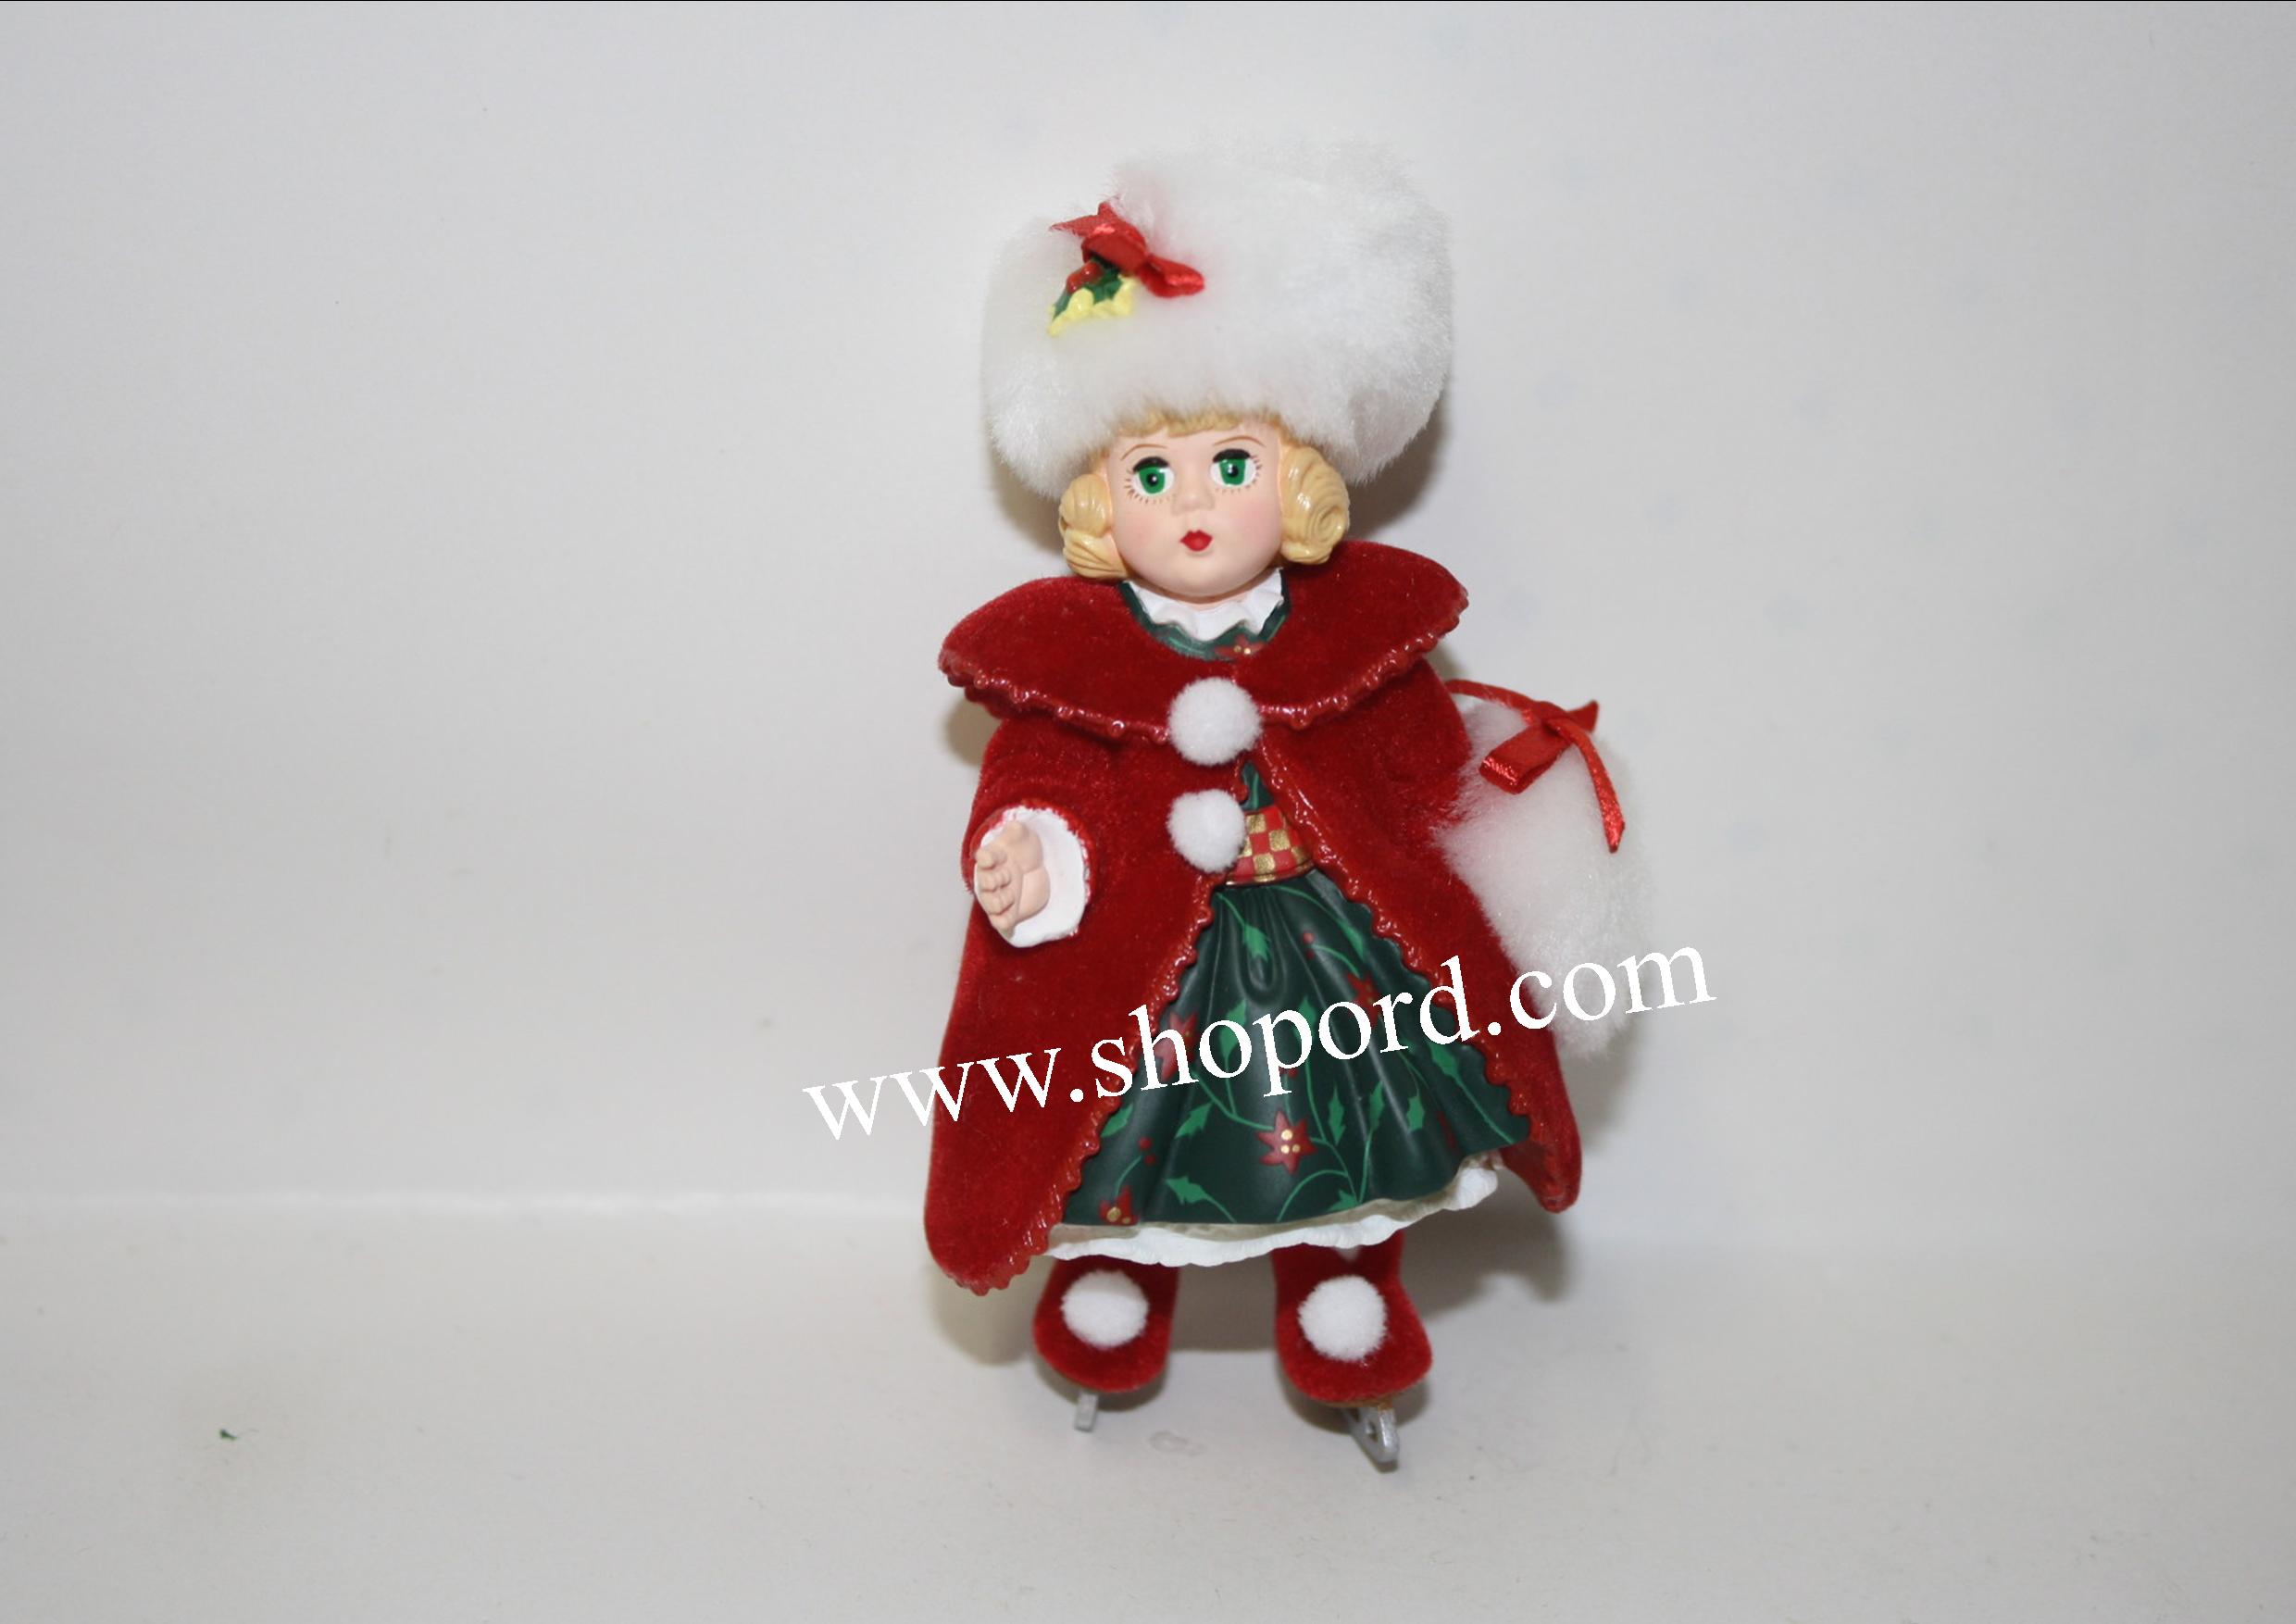 Hallmark 2000 Christmas Holly Ornament 5th In The Madame Alexander Series QX6611